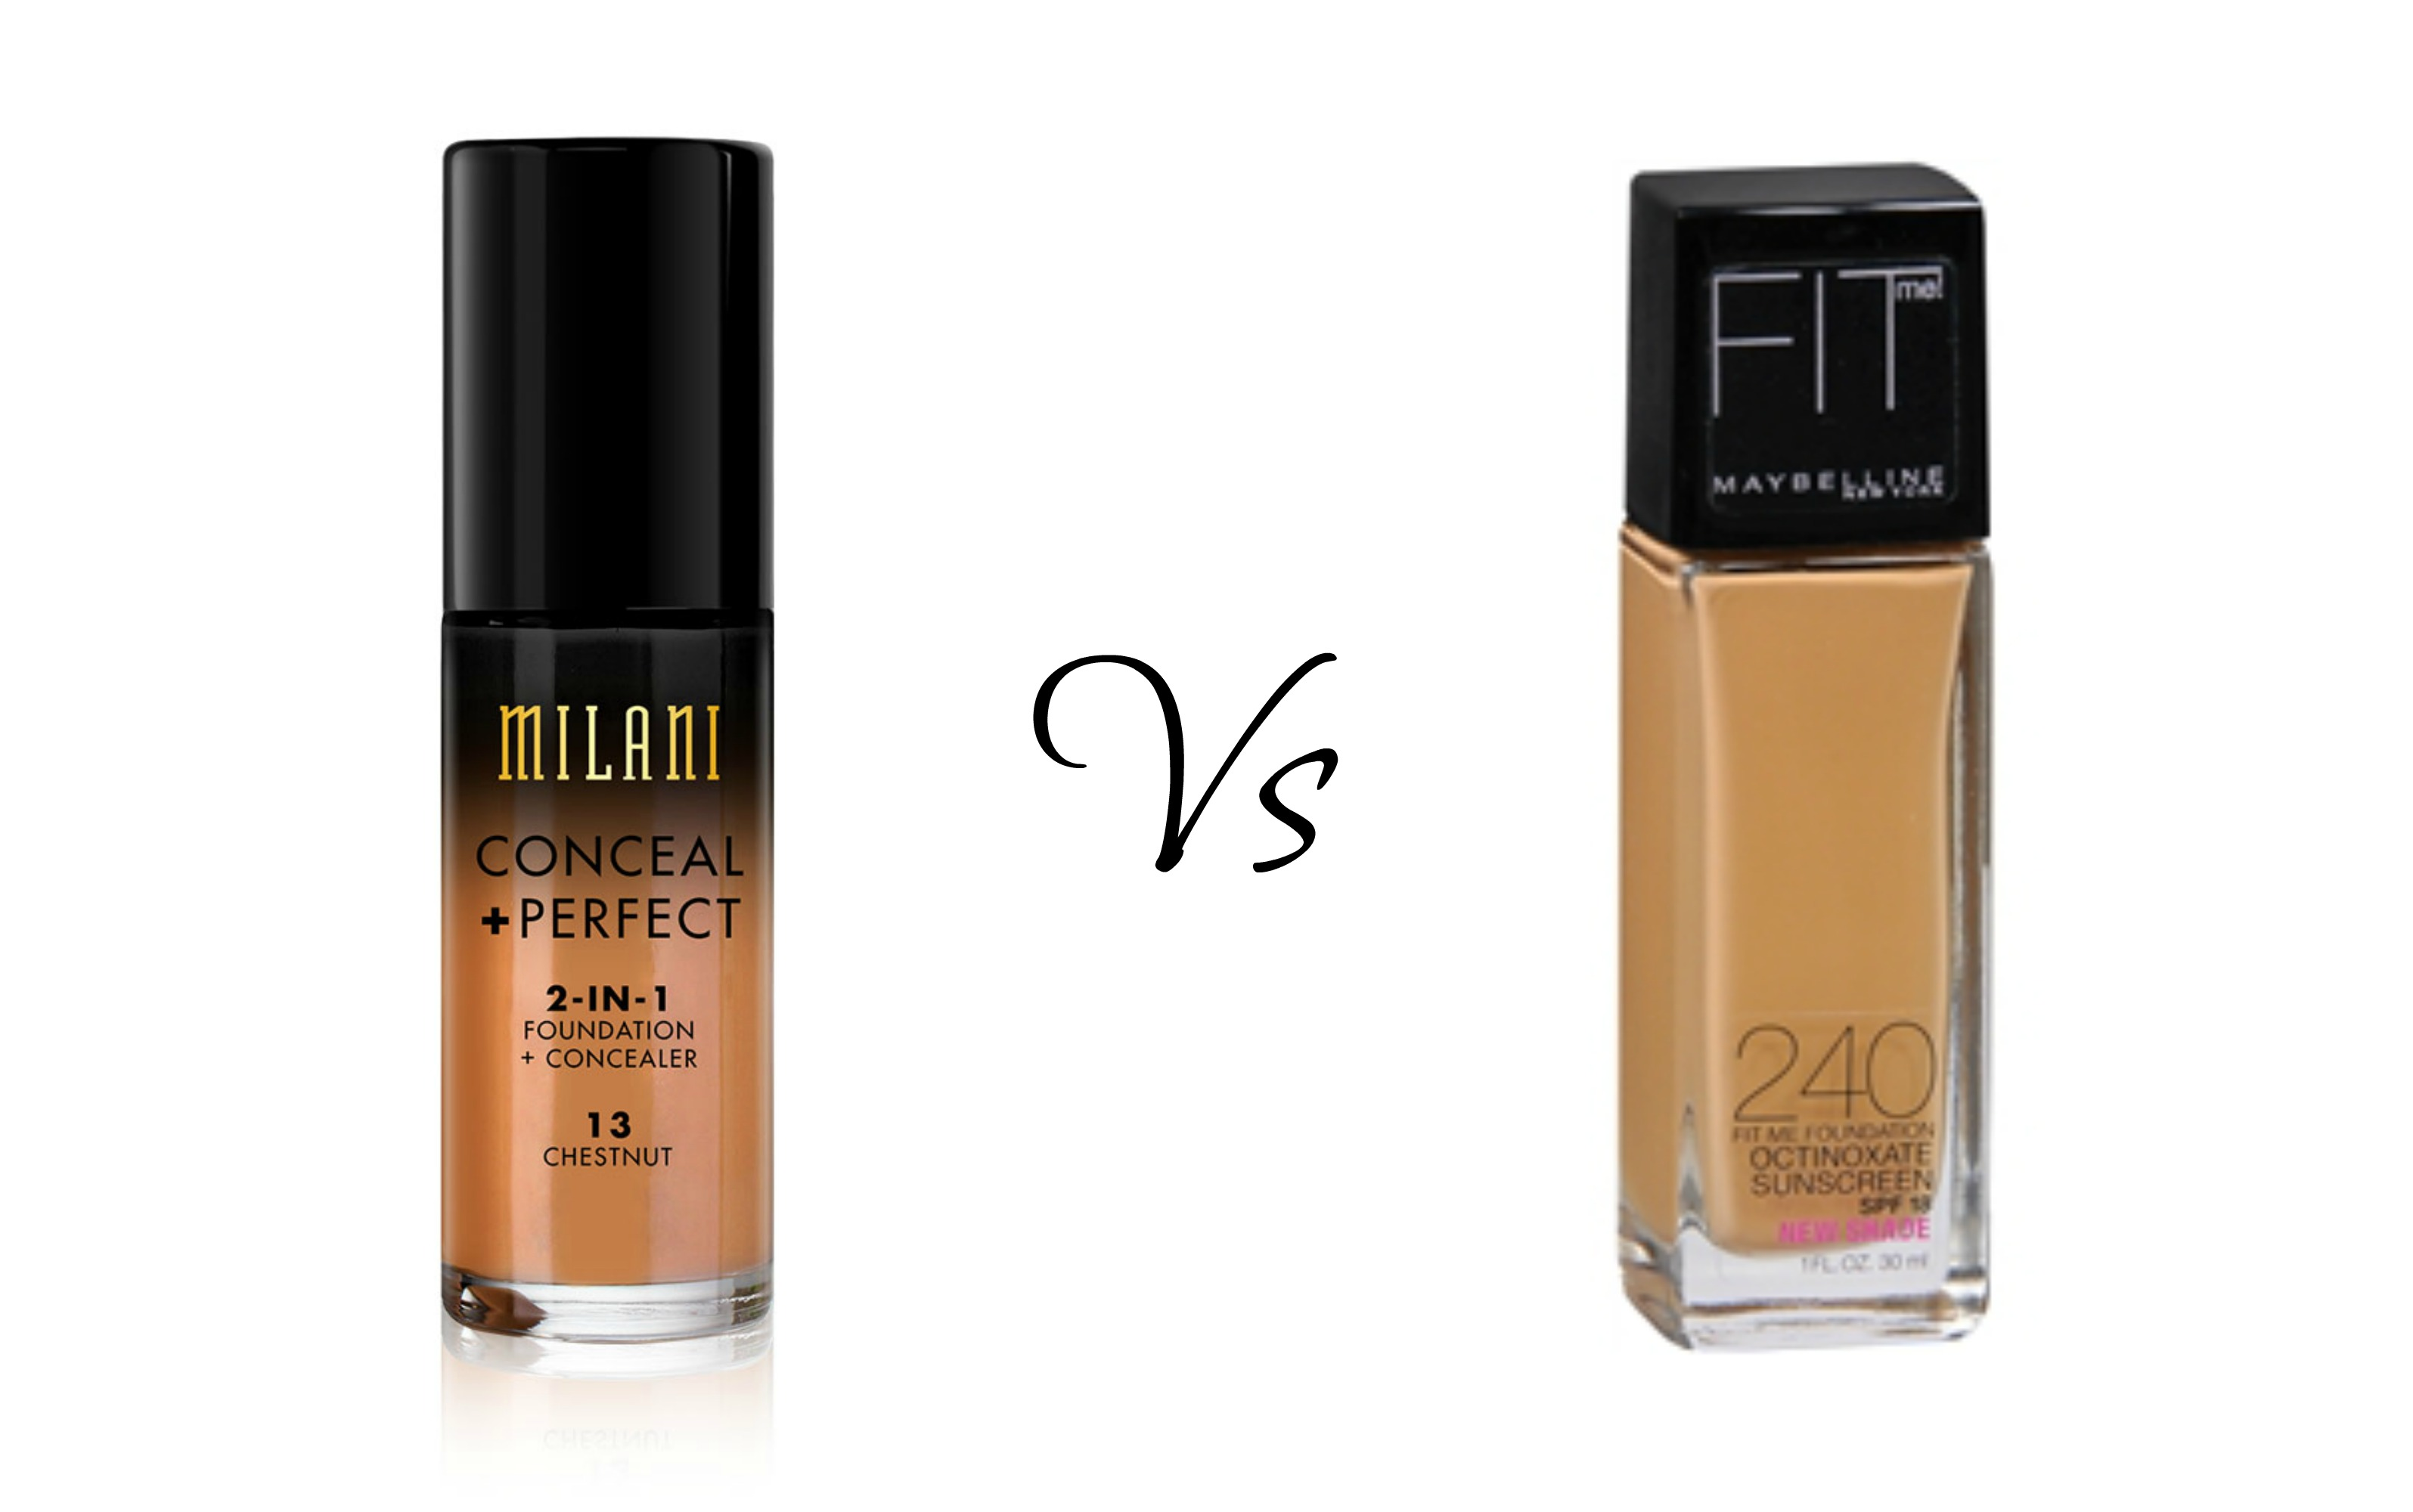 Maybelline Fit Me Matte Foundation Vs Milani Conceal 2 In